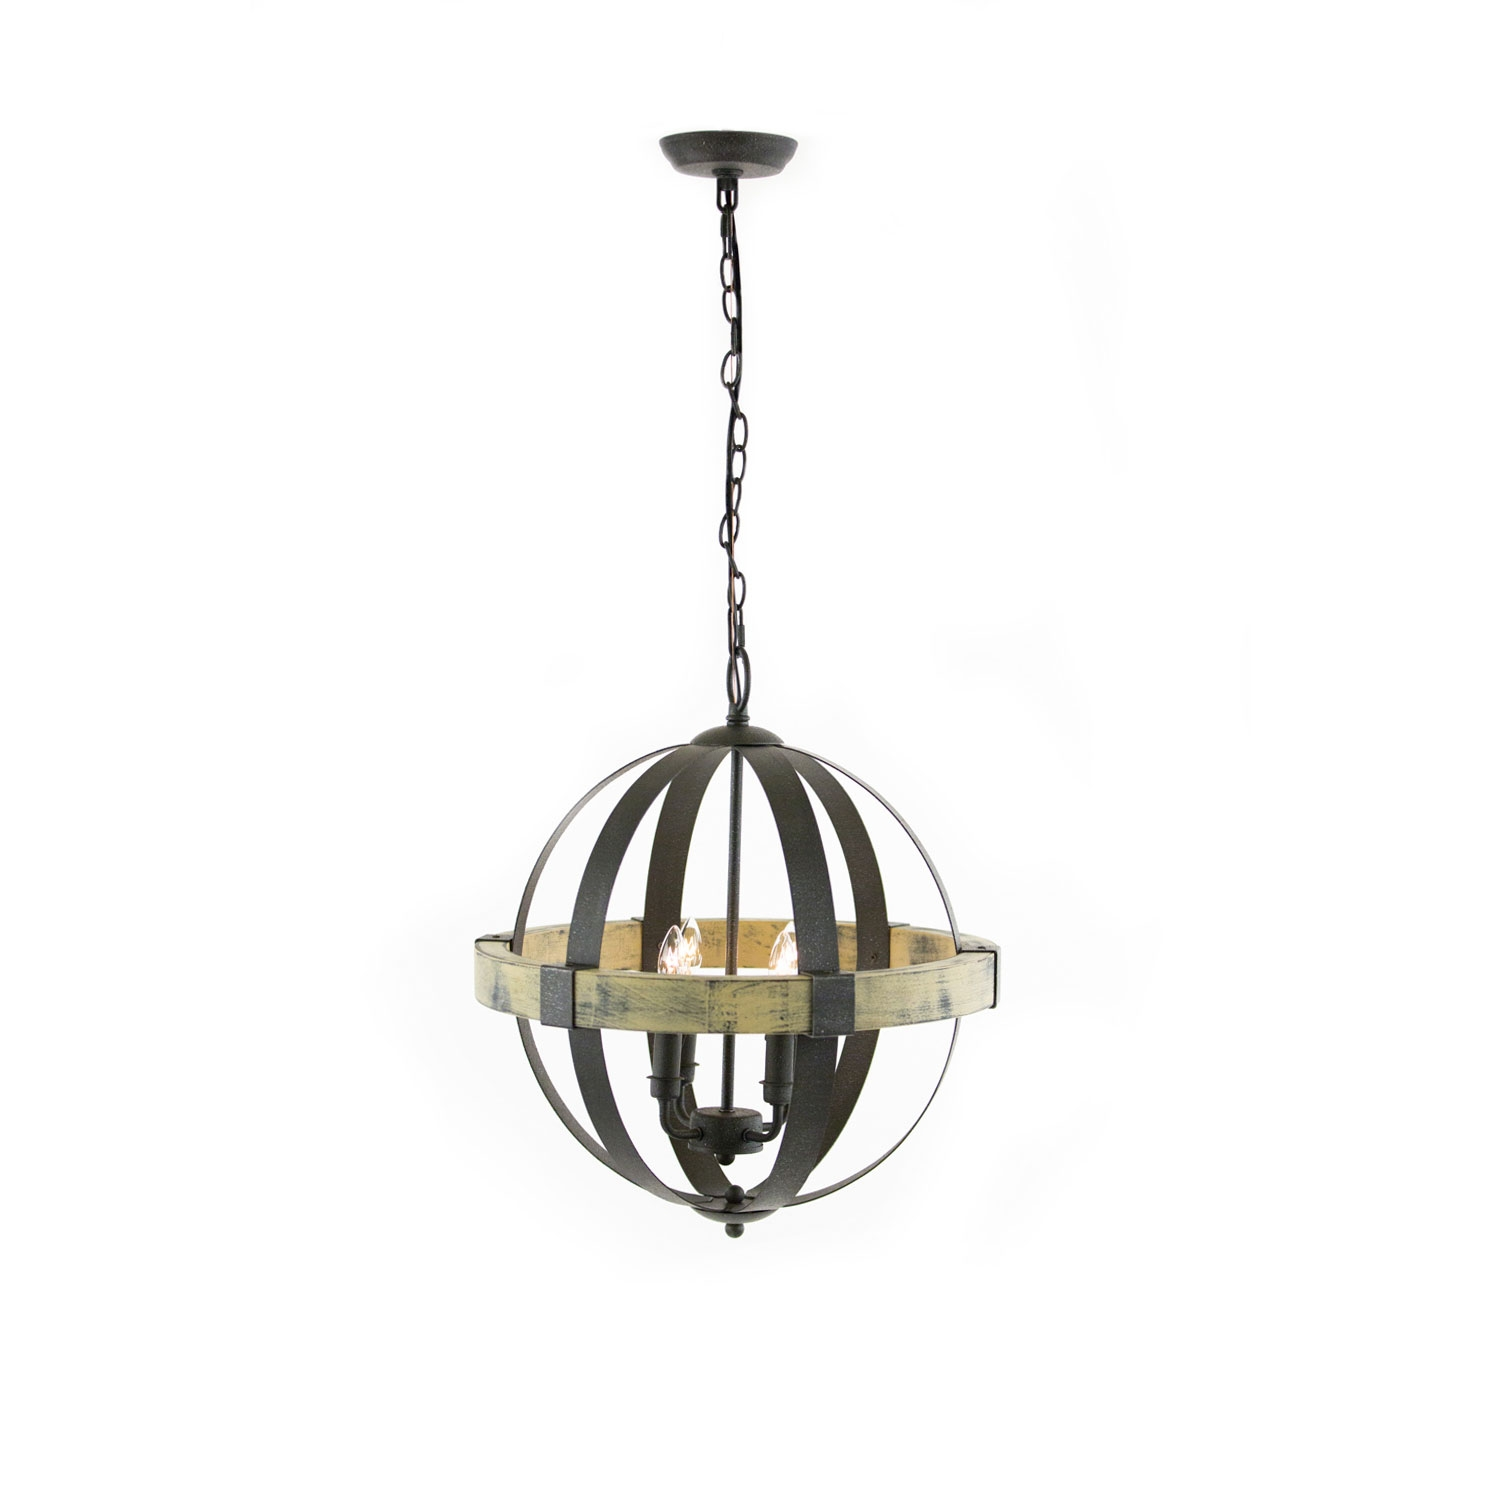 Artcraft Castello Black And Aspen Wood Four Light 20 Inch Wide In Chandelier Lights (Image 2 of 15)